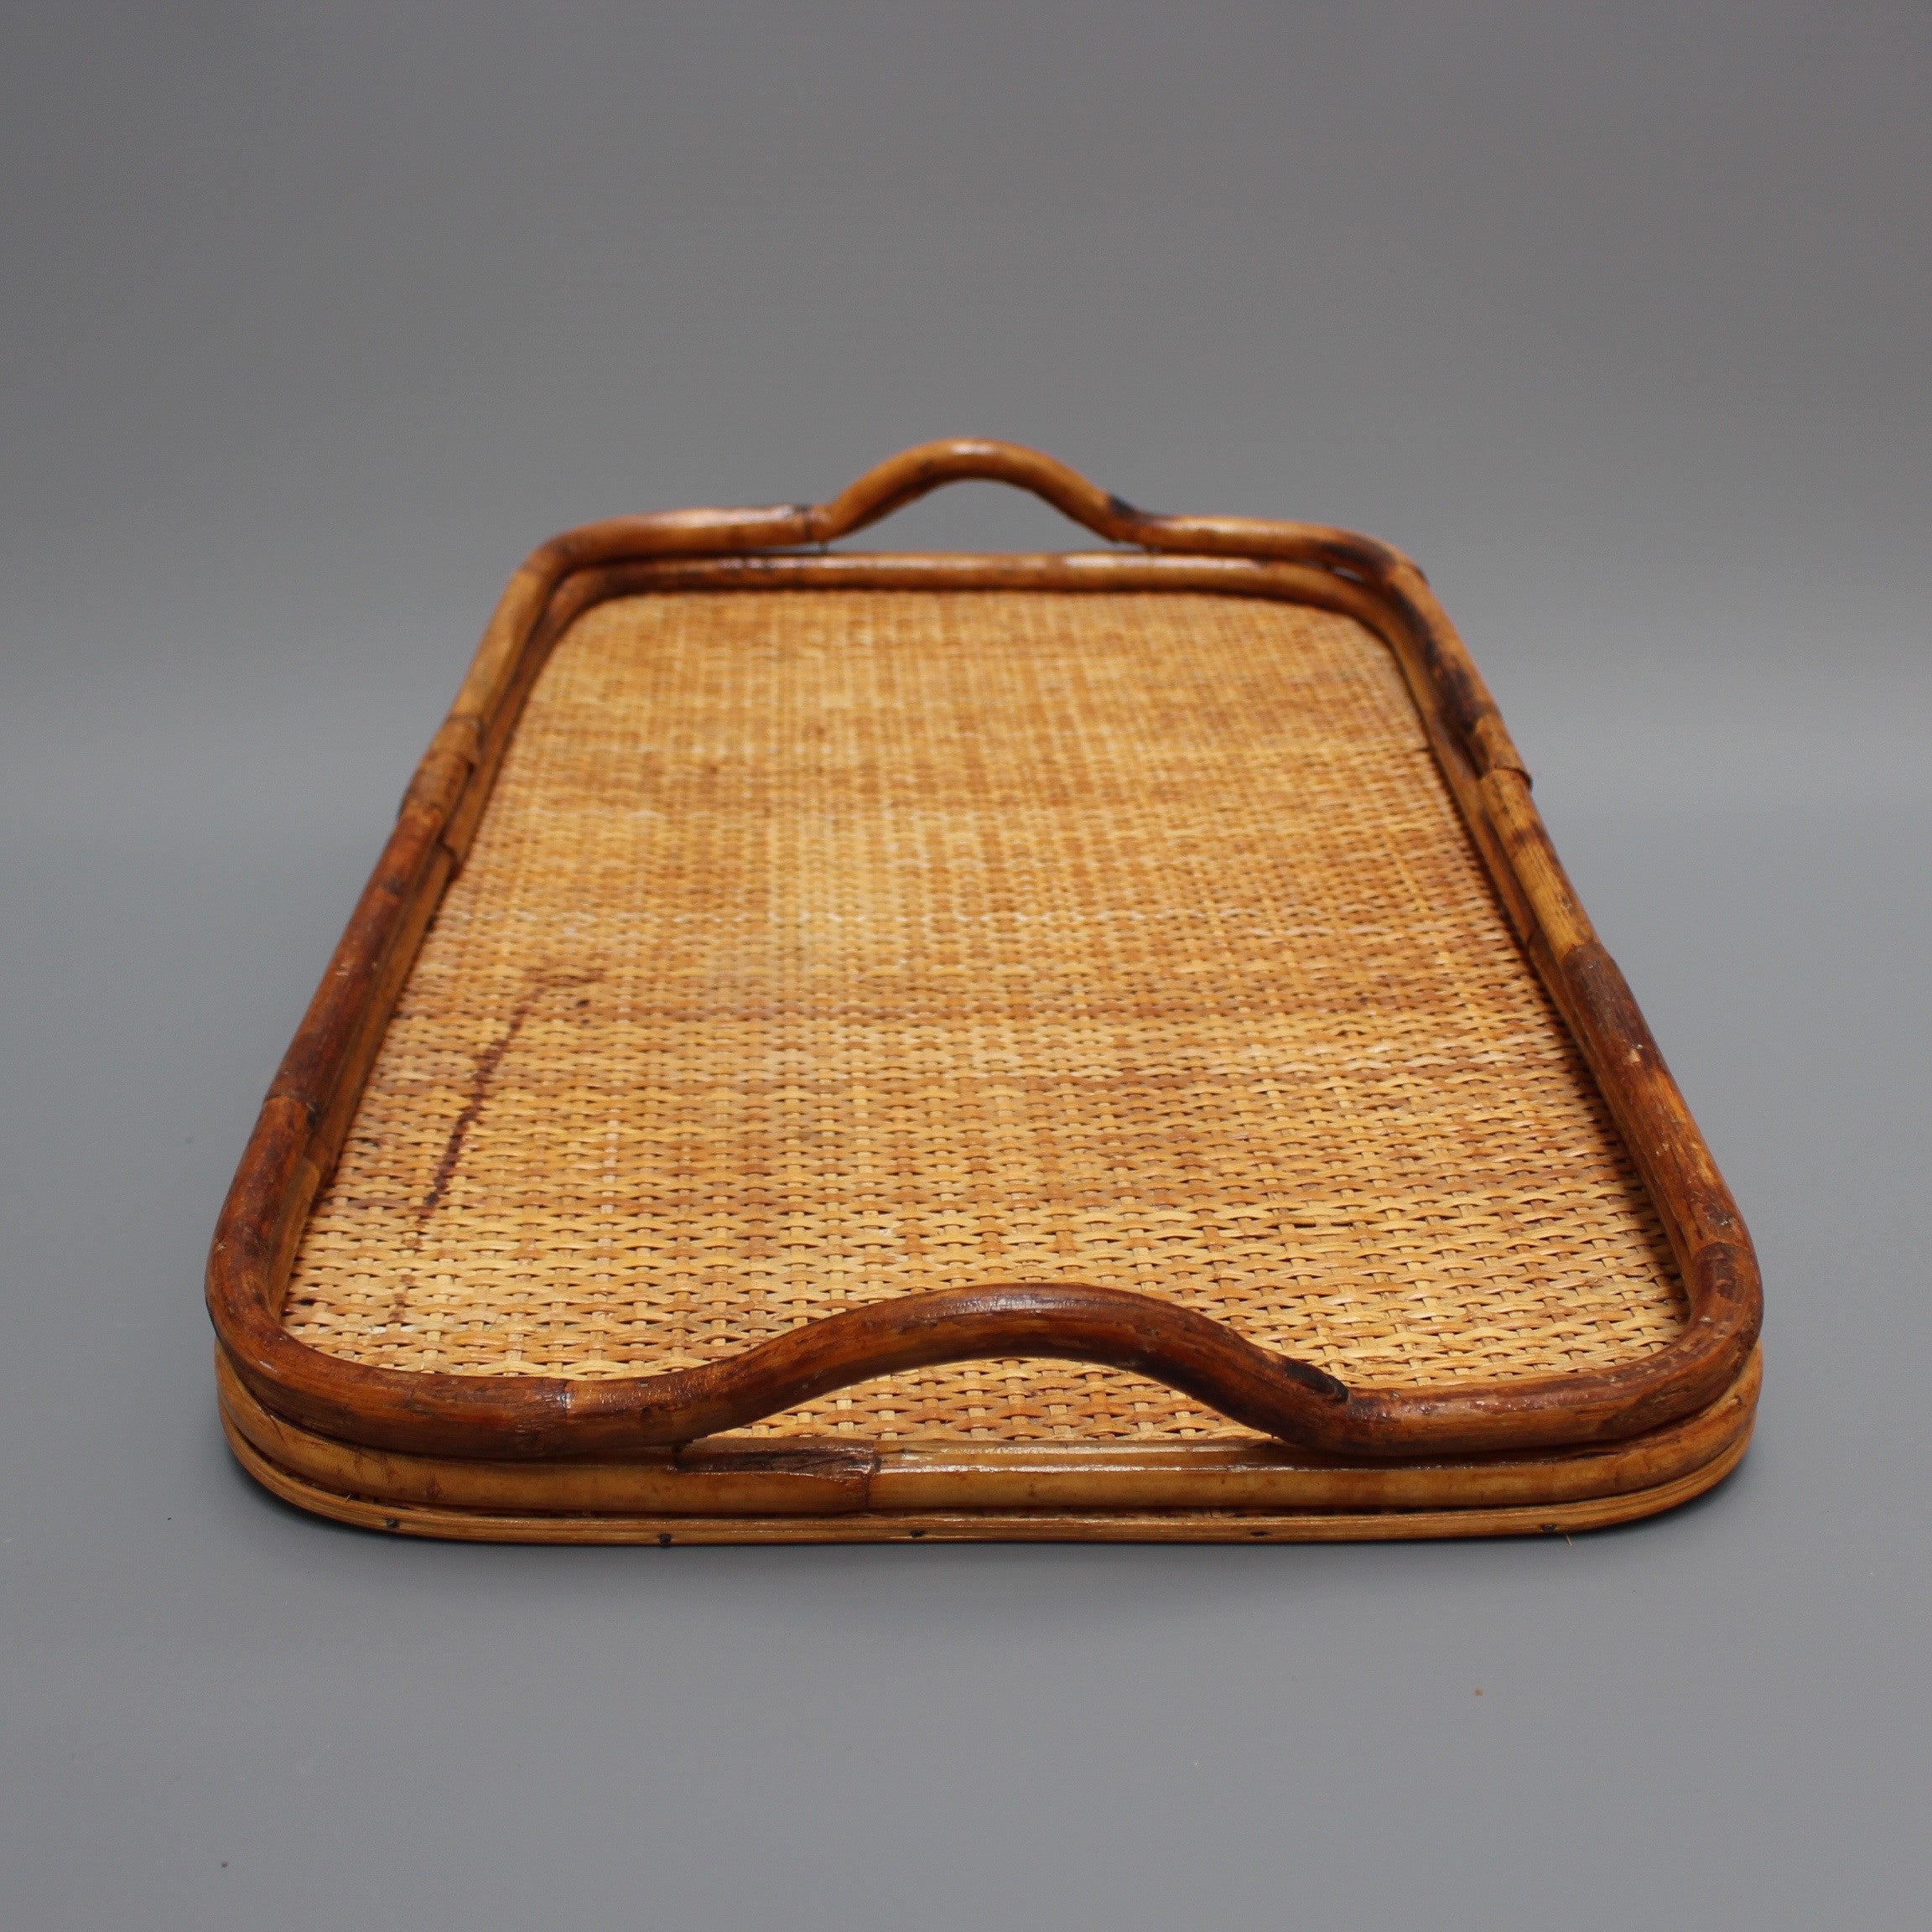 Vintage Dutch Wicker Serving Tray